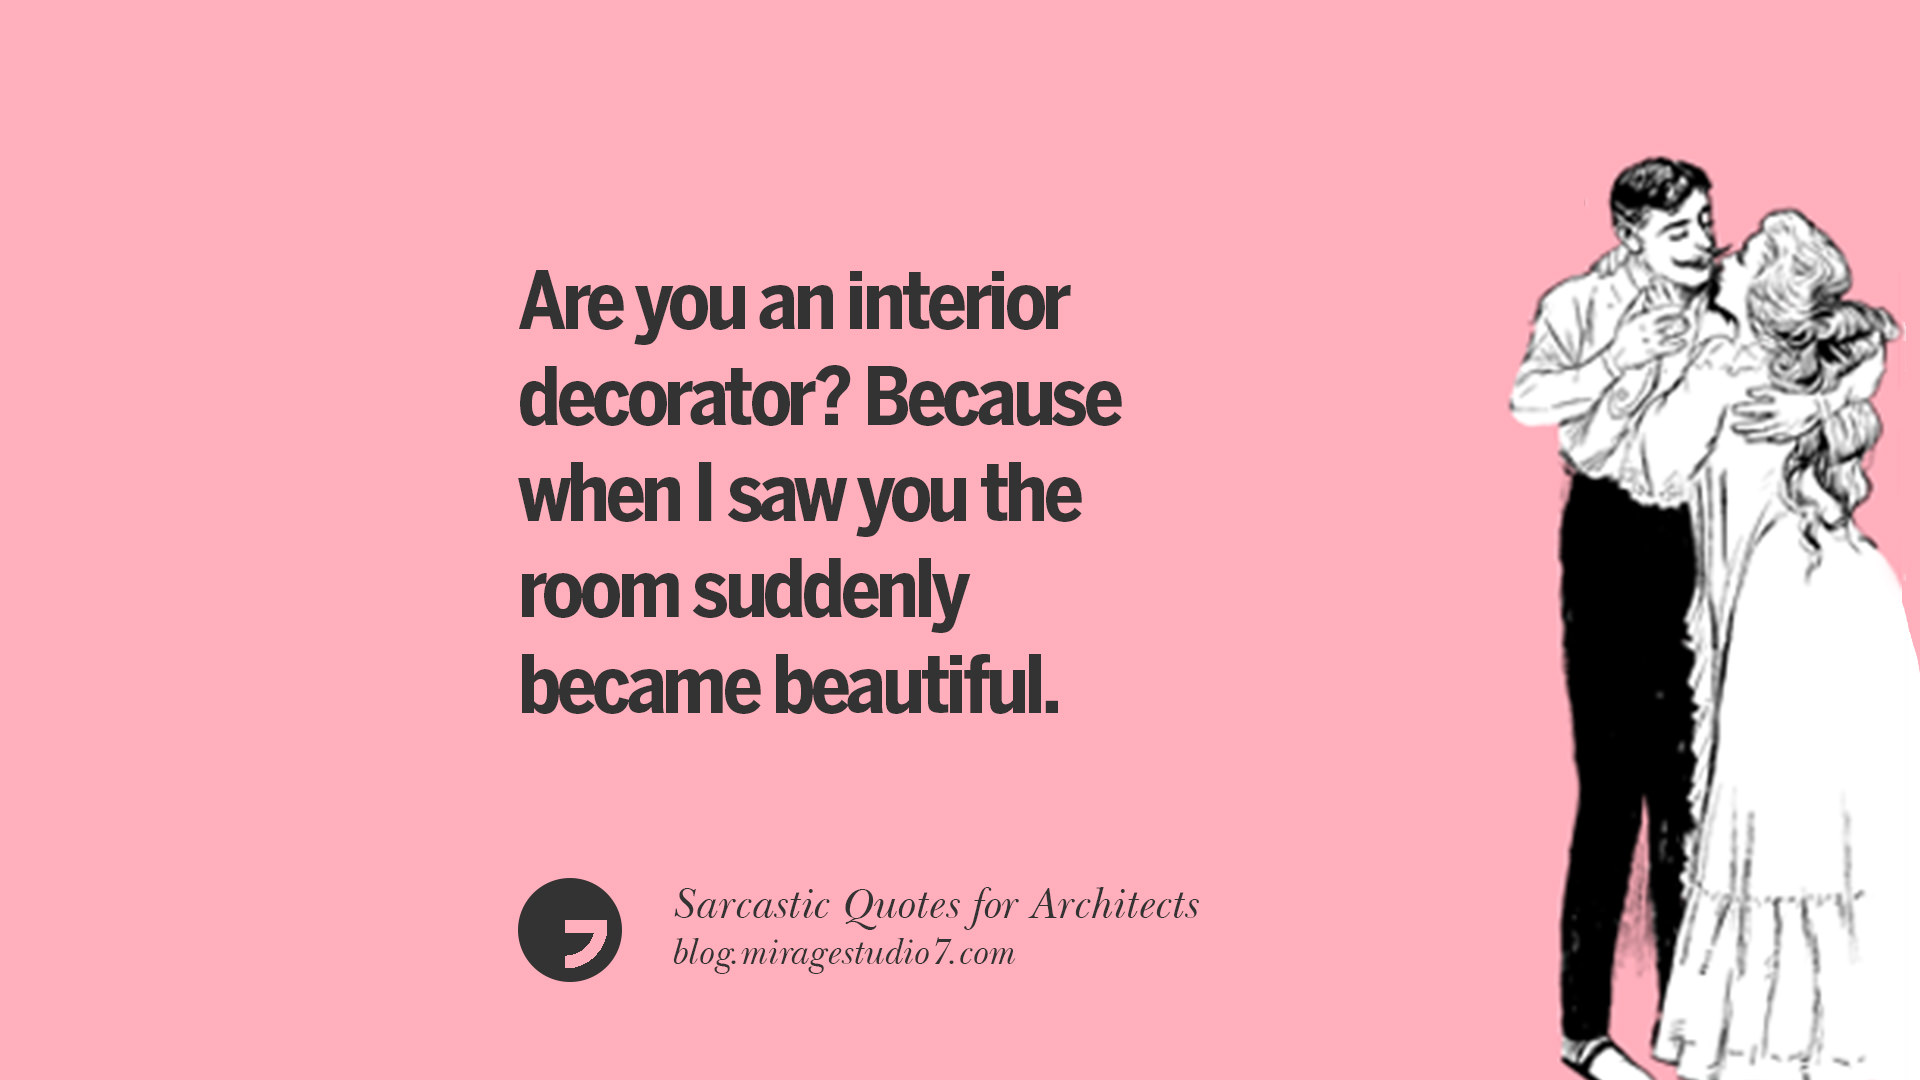 12 Sarcastic Catch Line For Architects and Interior Designers